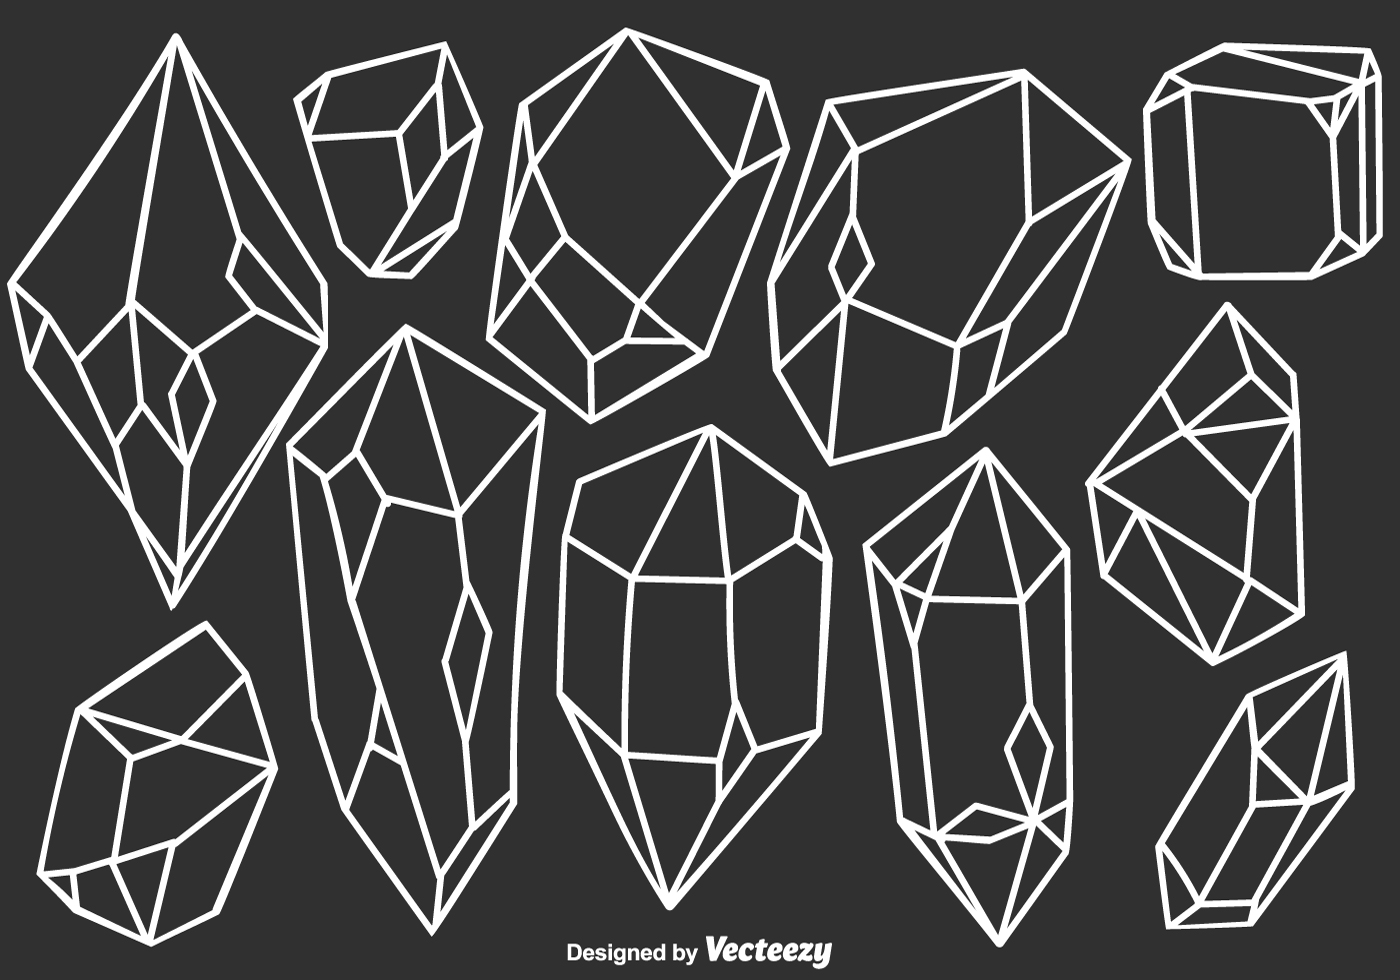 Crystal Free Vector Art - (2011 Free Downloads)